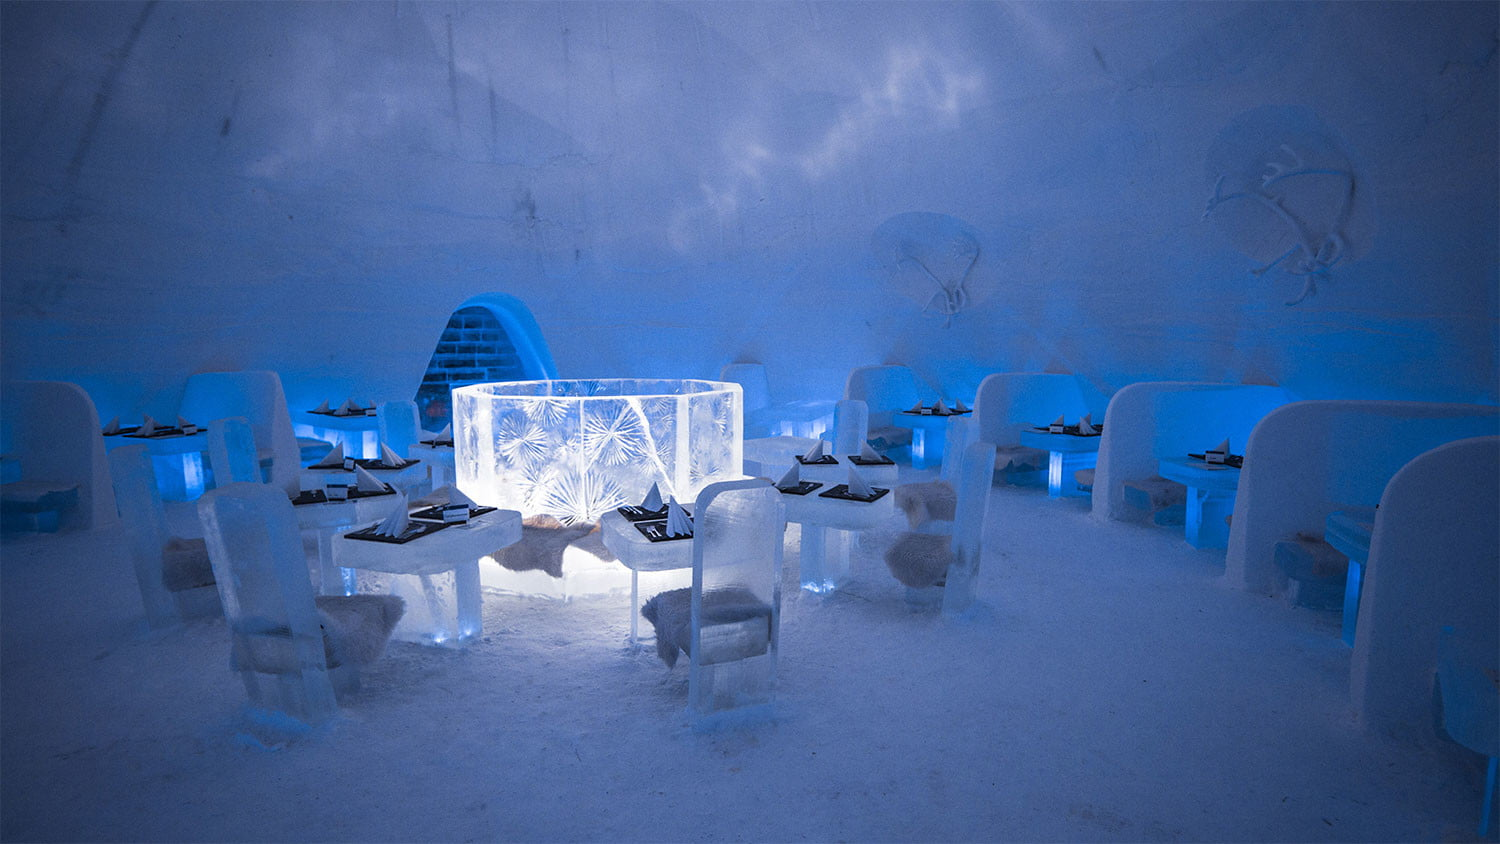 lapland hotels game of thrones, game of thrones ice hotel